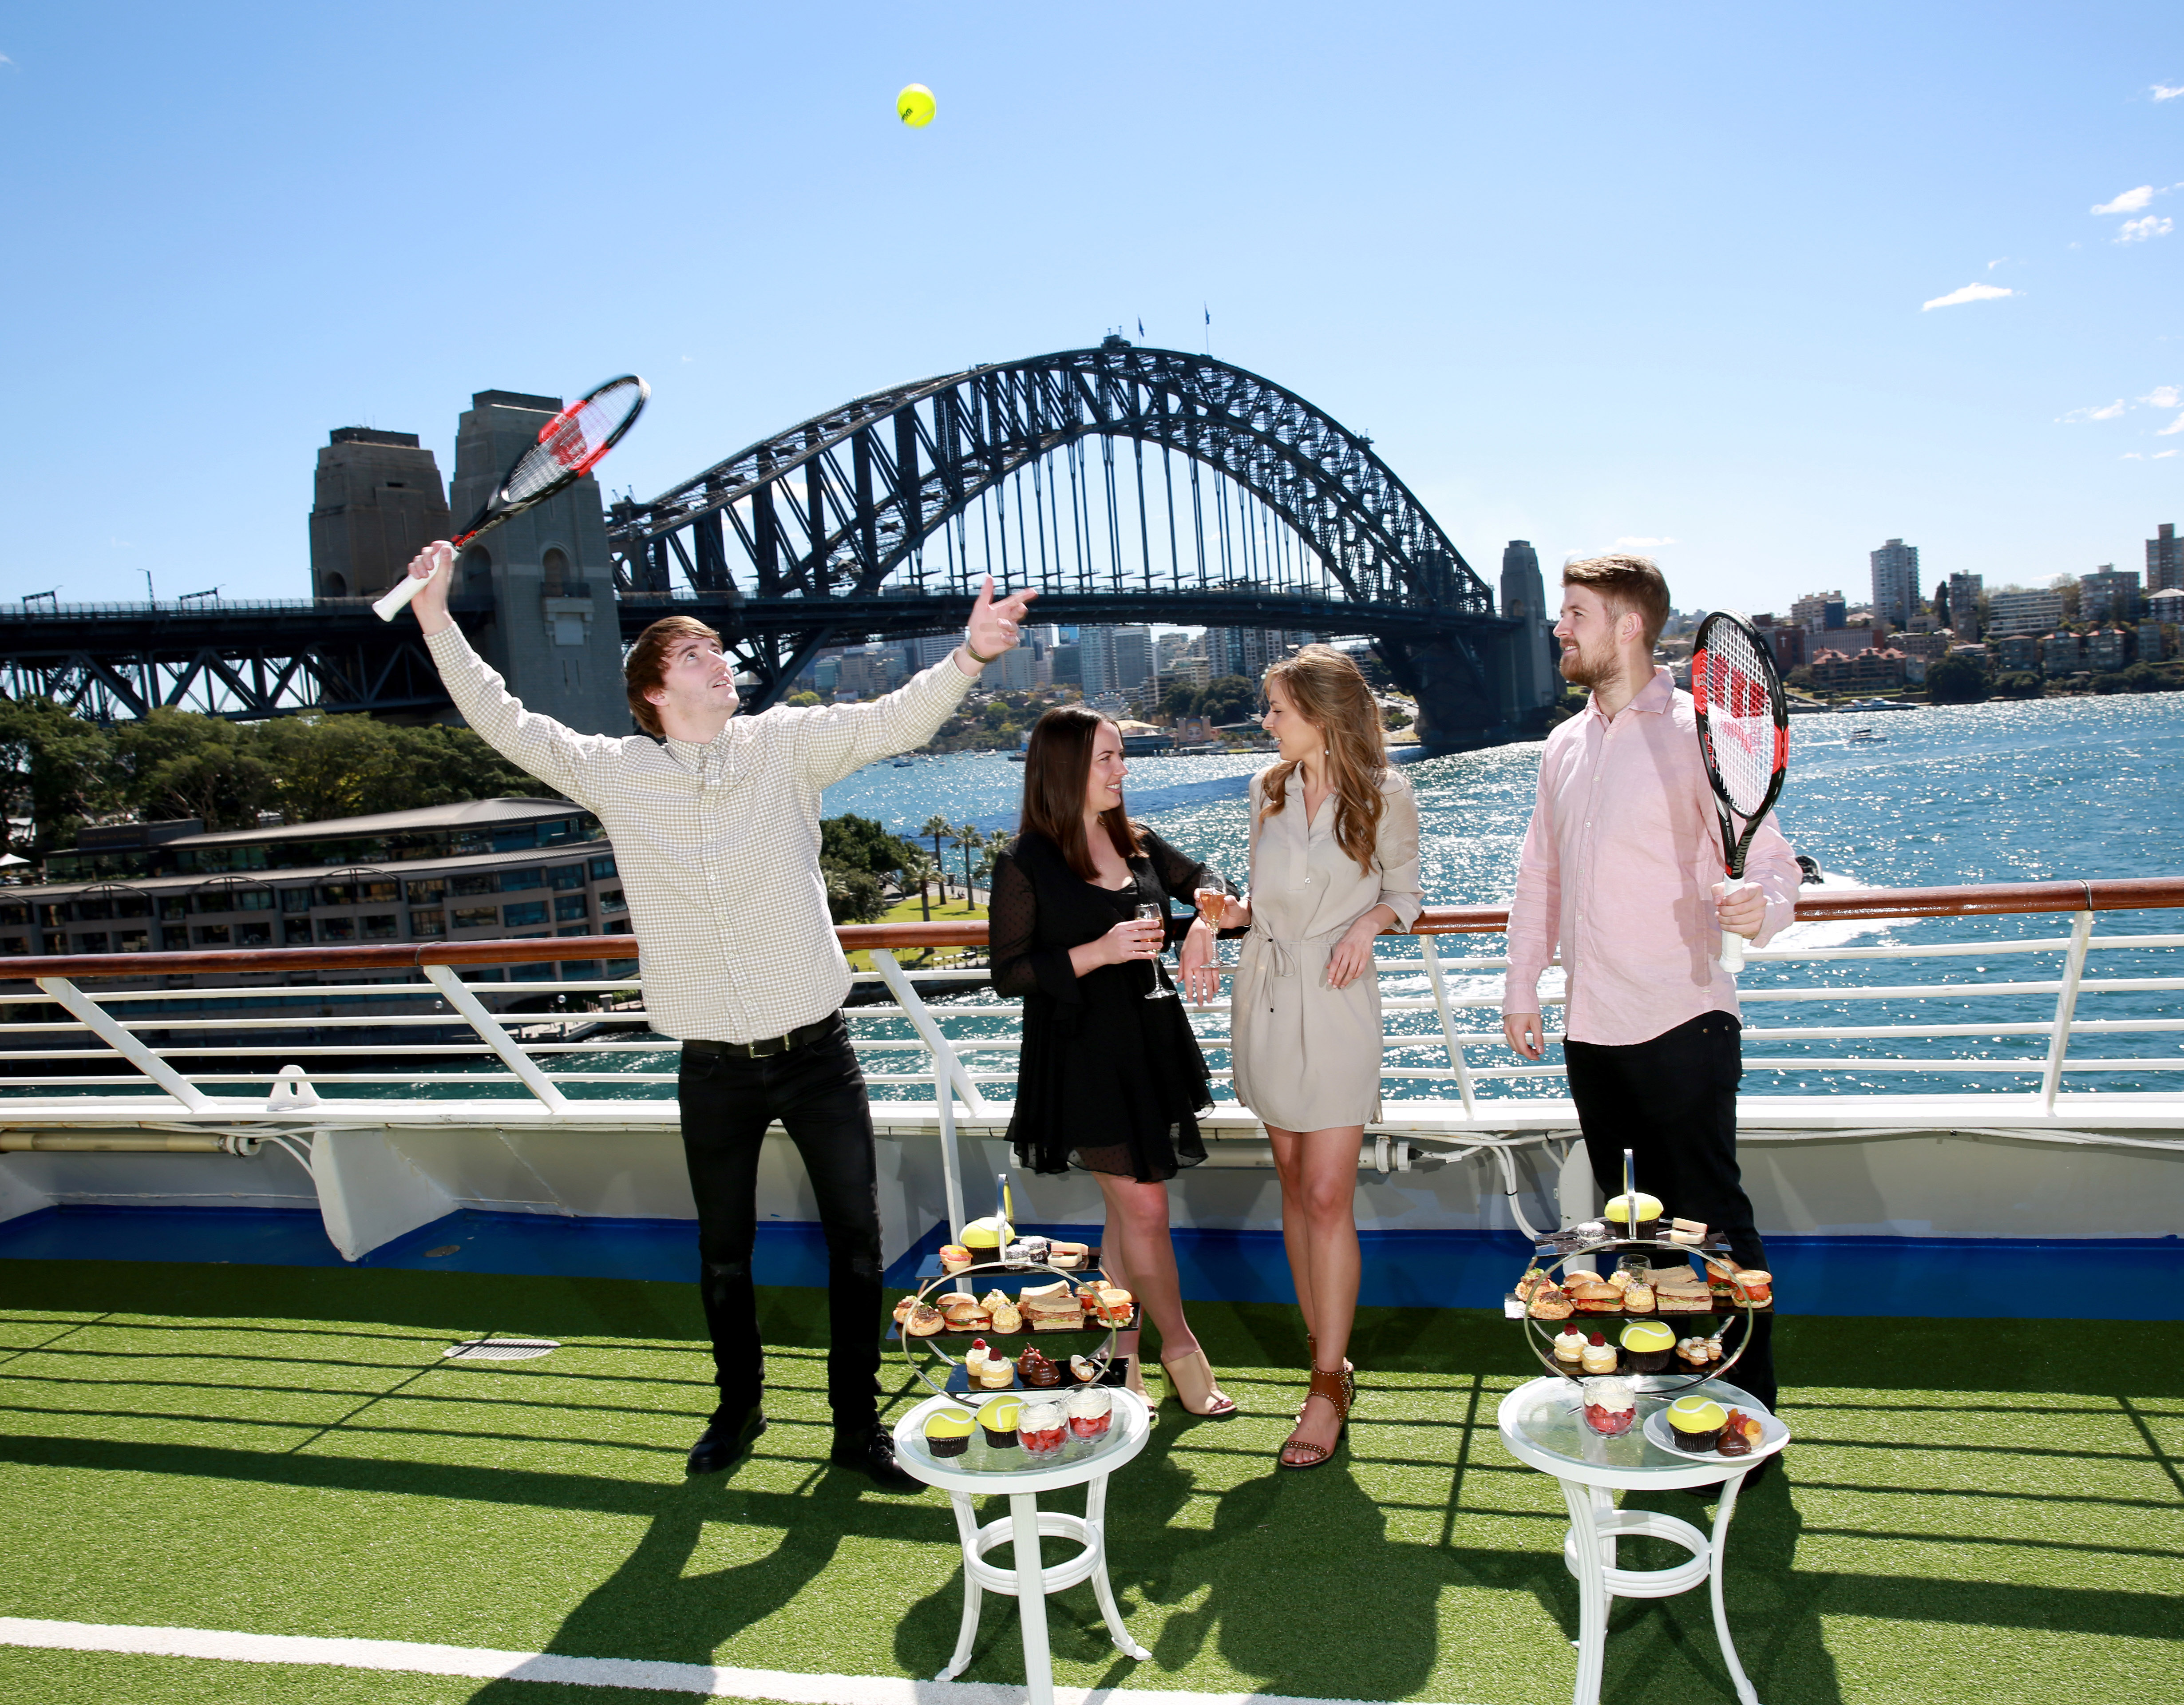 Jack Carter, Bayley Kite, Angelique Chaumont and Cory McLeod on P&O Cruises Pacific Explorer enjoying a high tea as part of the Australian open cruise. Saturday 9th September 2017. Photo by Damian Shaw